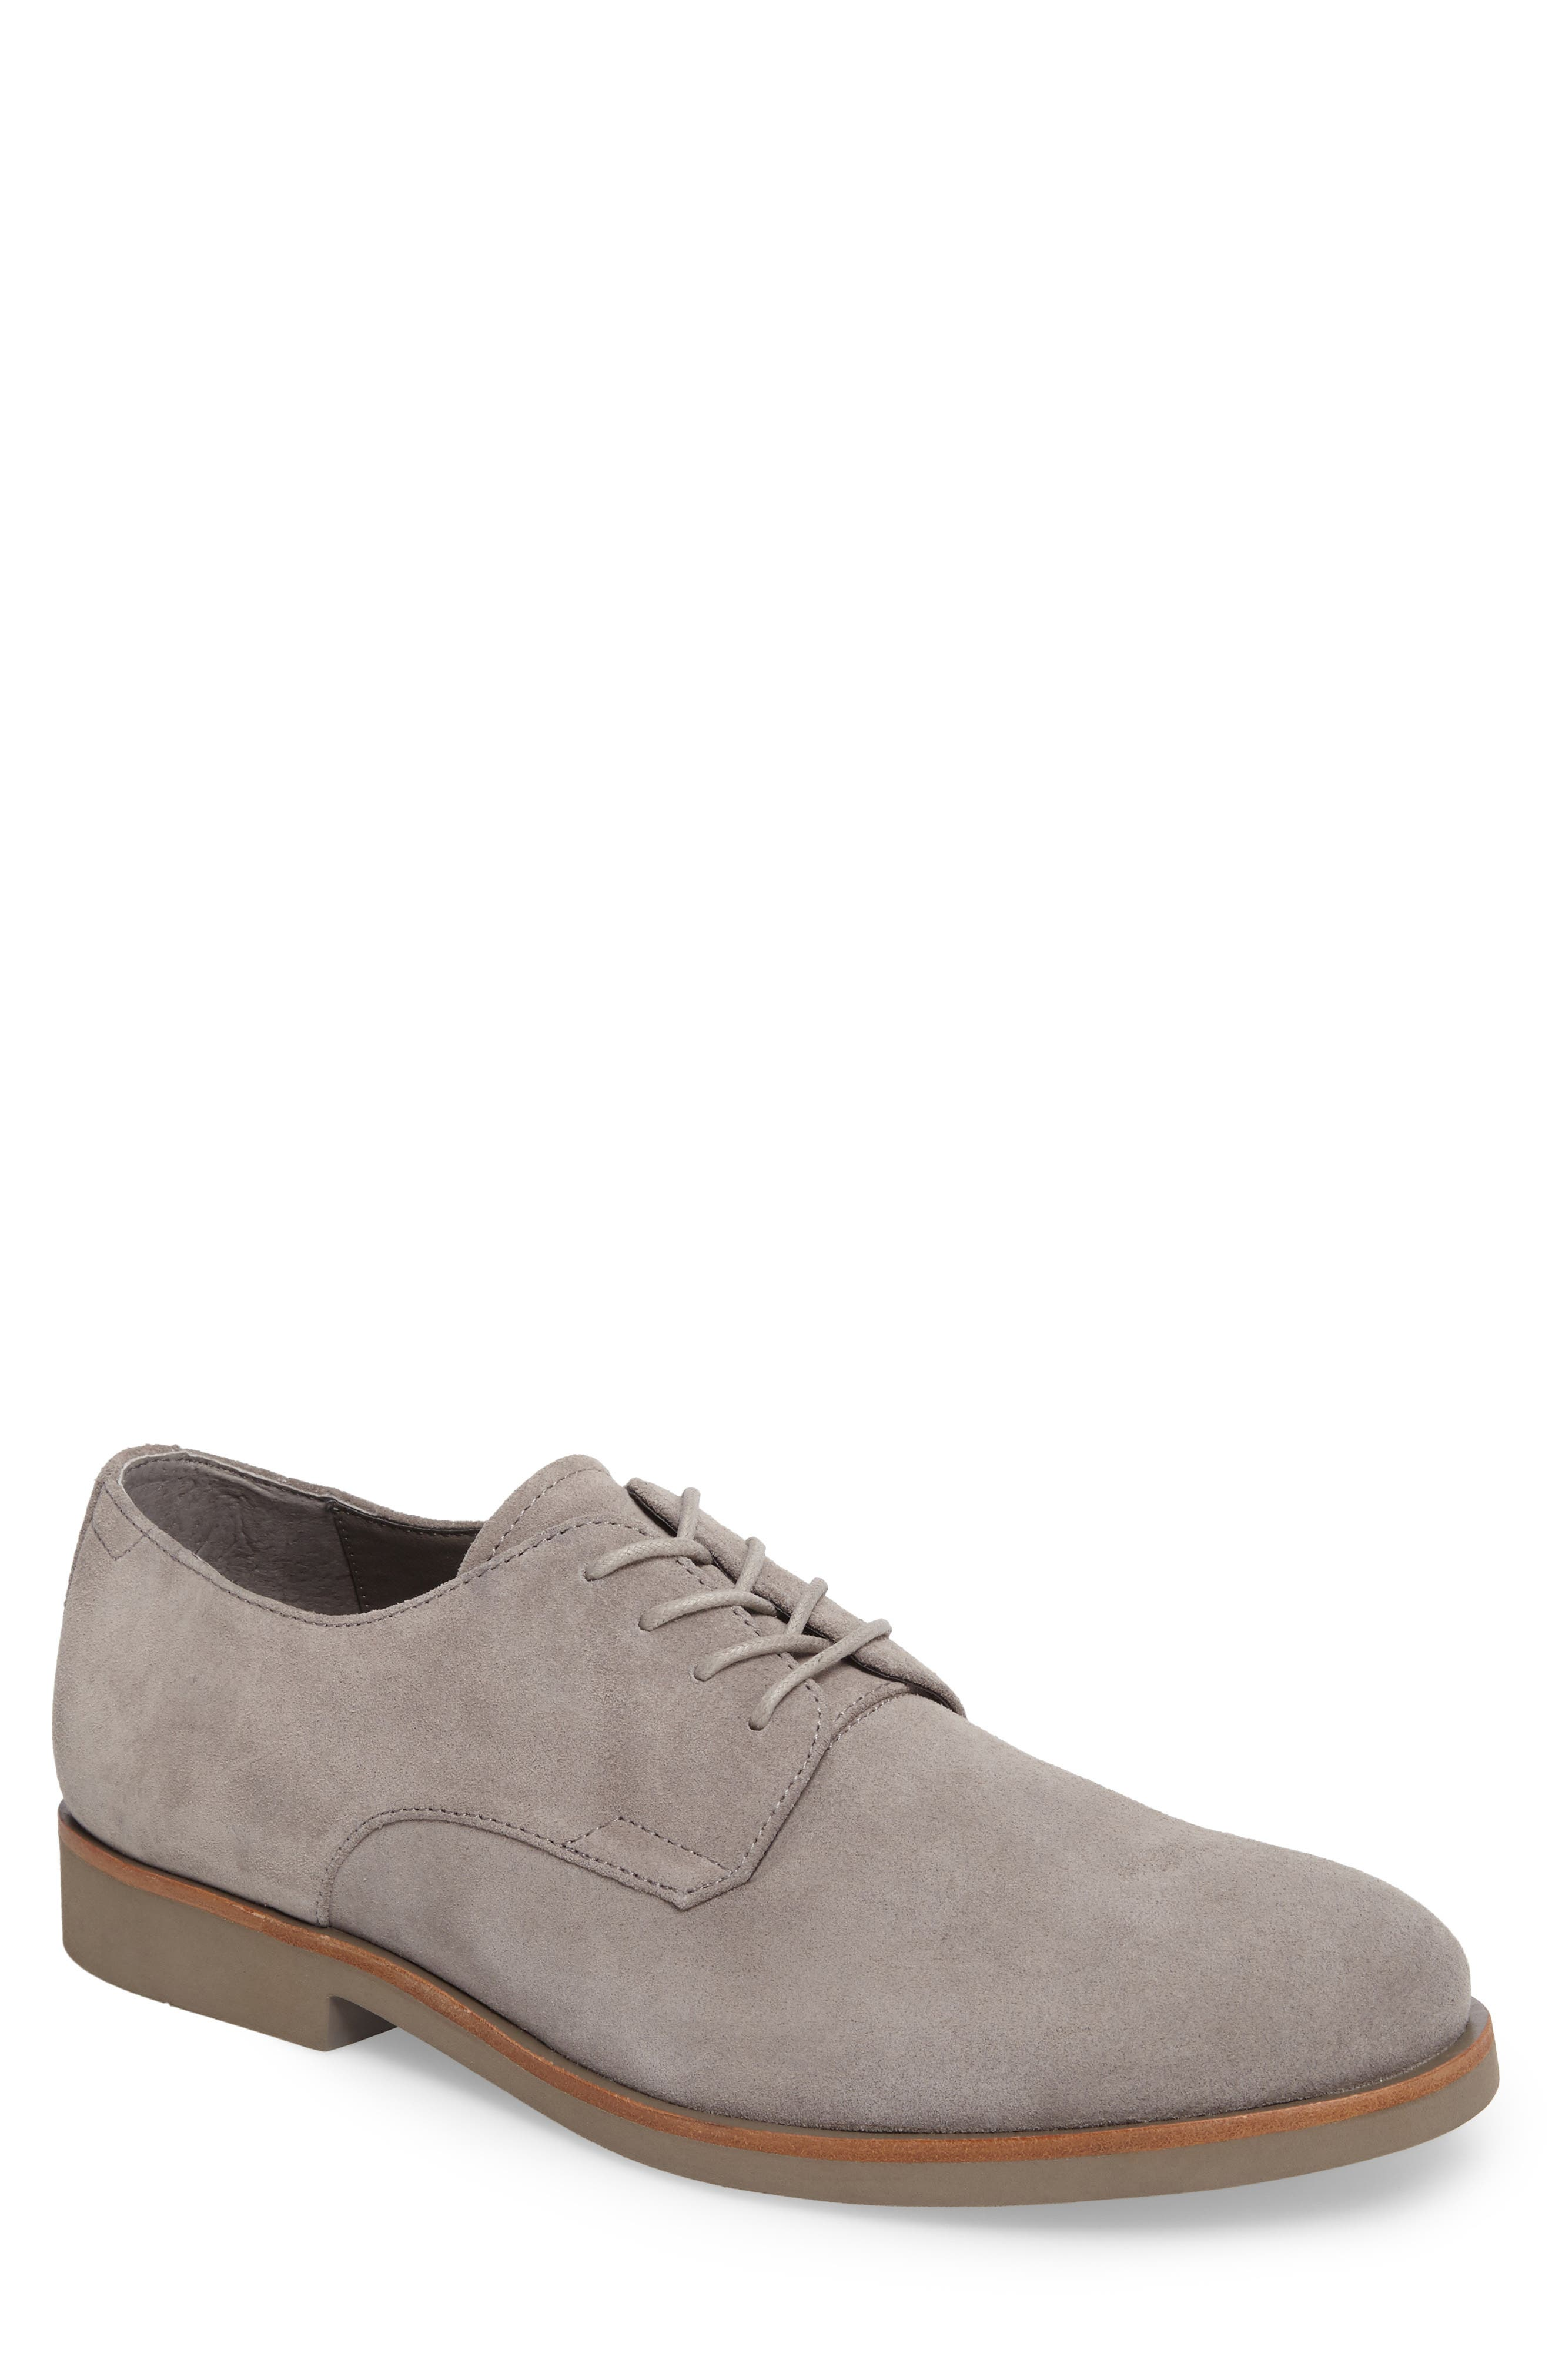 Faustino Plain Toe Derby,                         Main,                         color, Toffee Suede